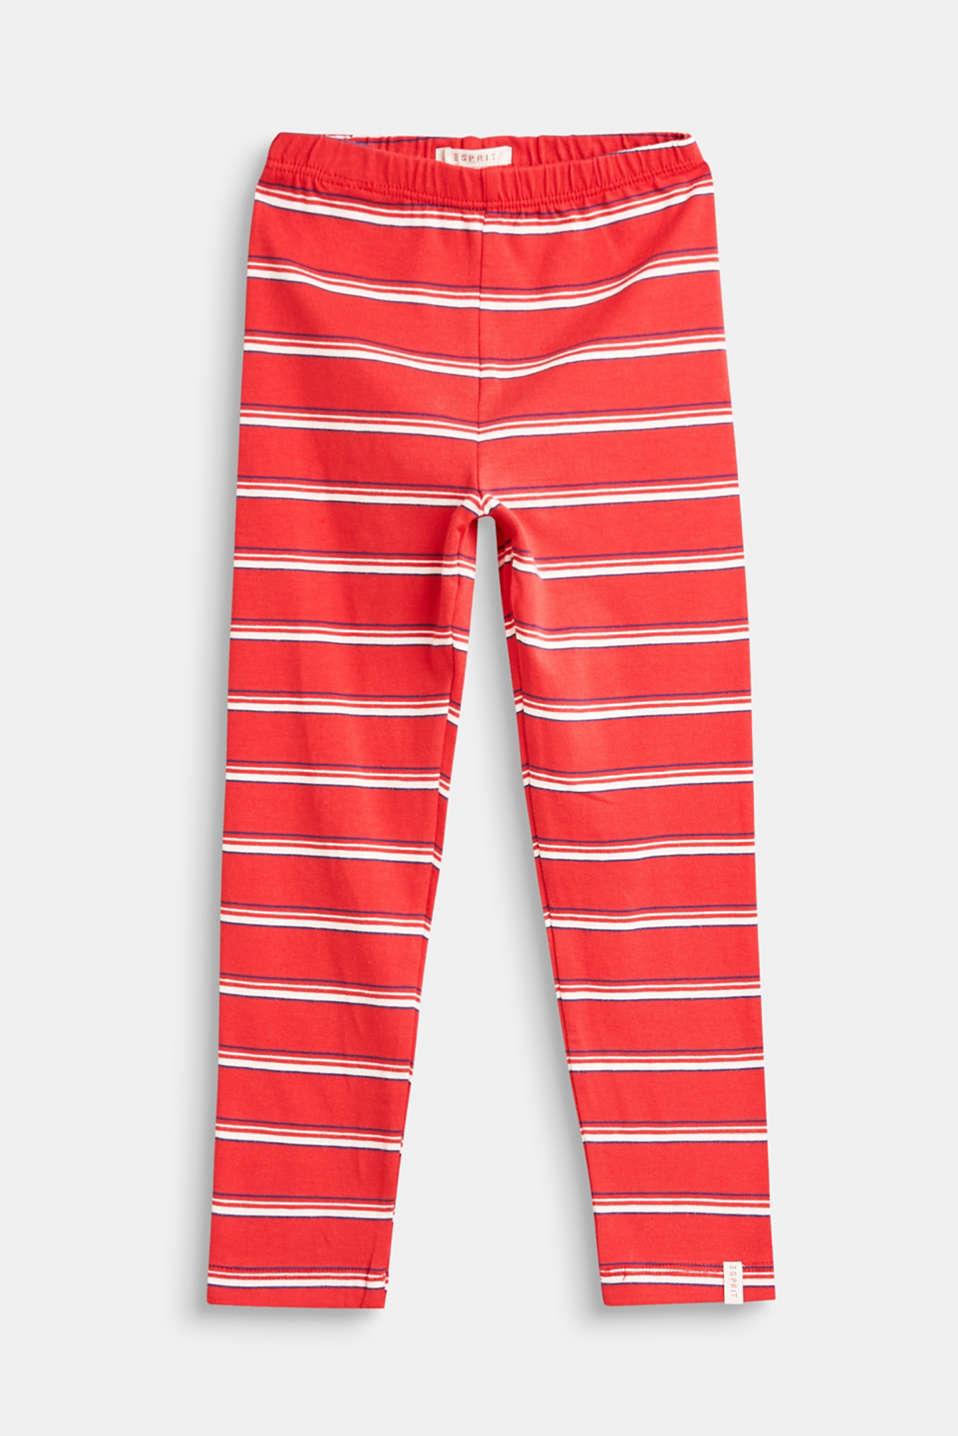 These striped leggings made of comfy, stretchy cotton are a brilliant basic.